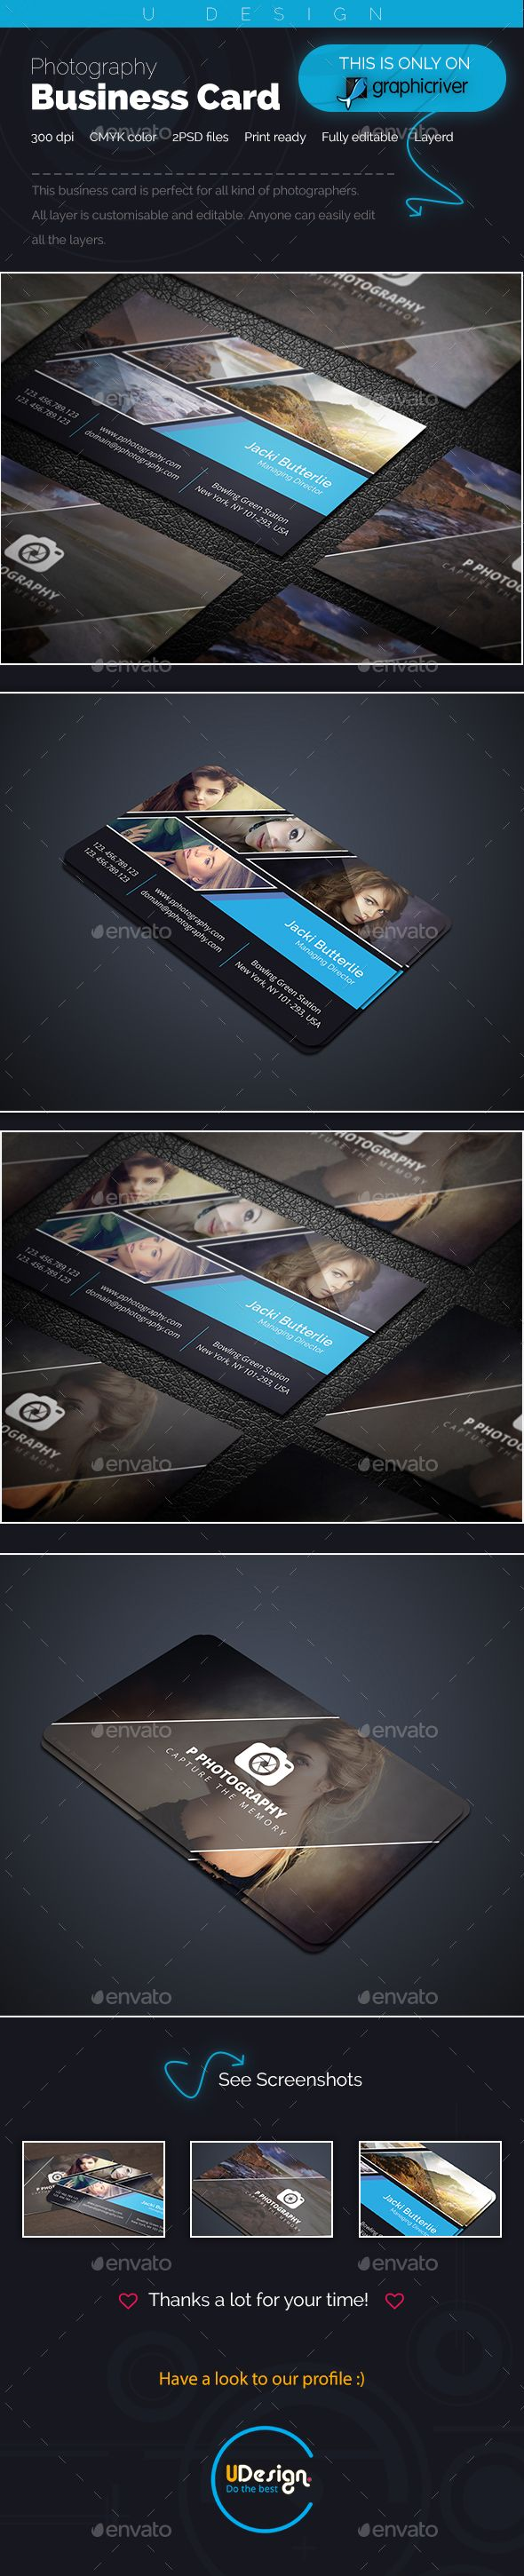 Photography Business Card - Business Cards Print Templates Download here : https://graphicriver.net/item/photography-business-card/19108973?s_rank=181&ref=Al-fatih